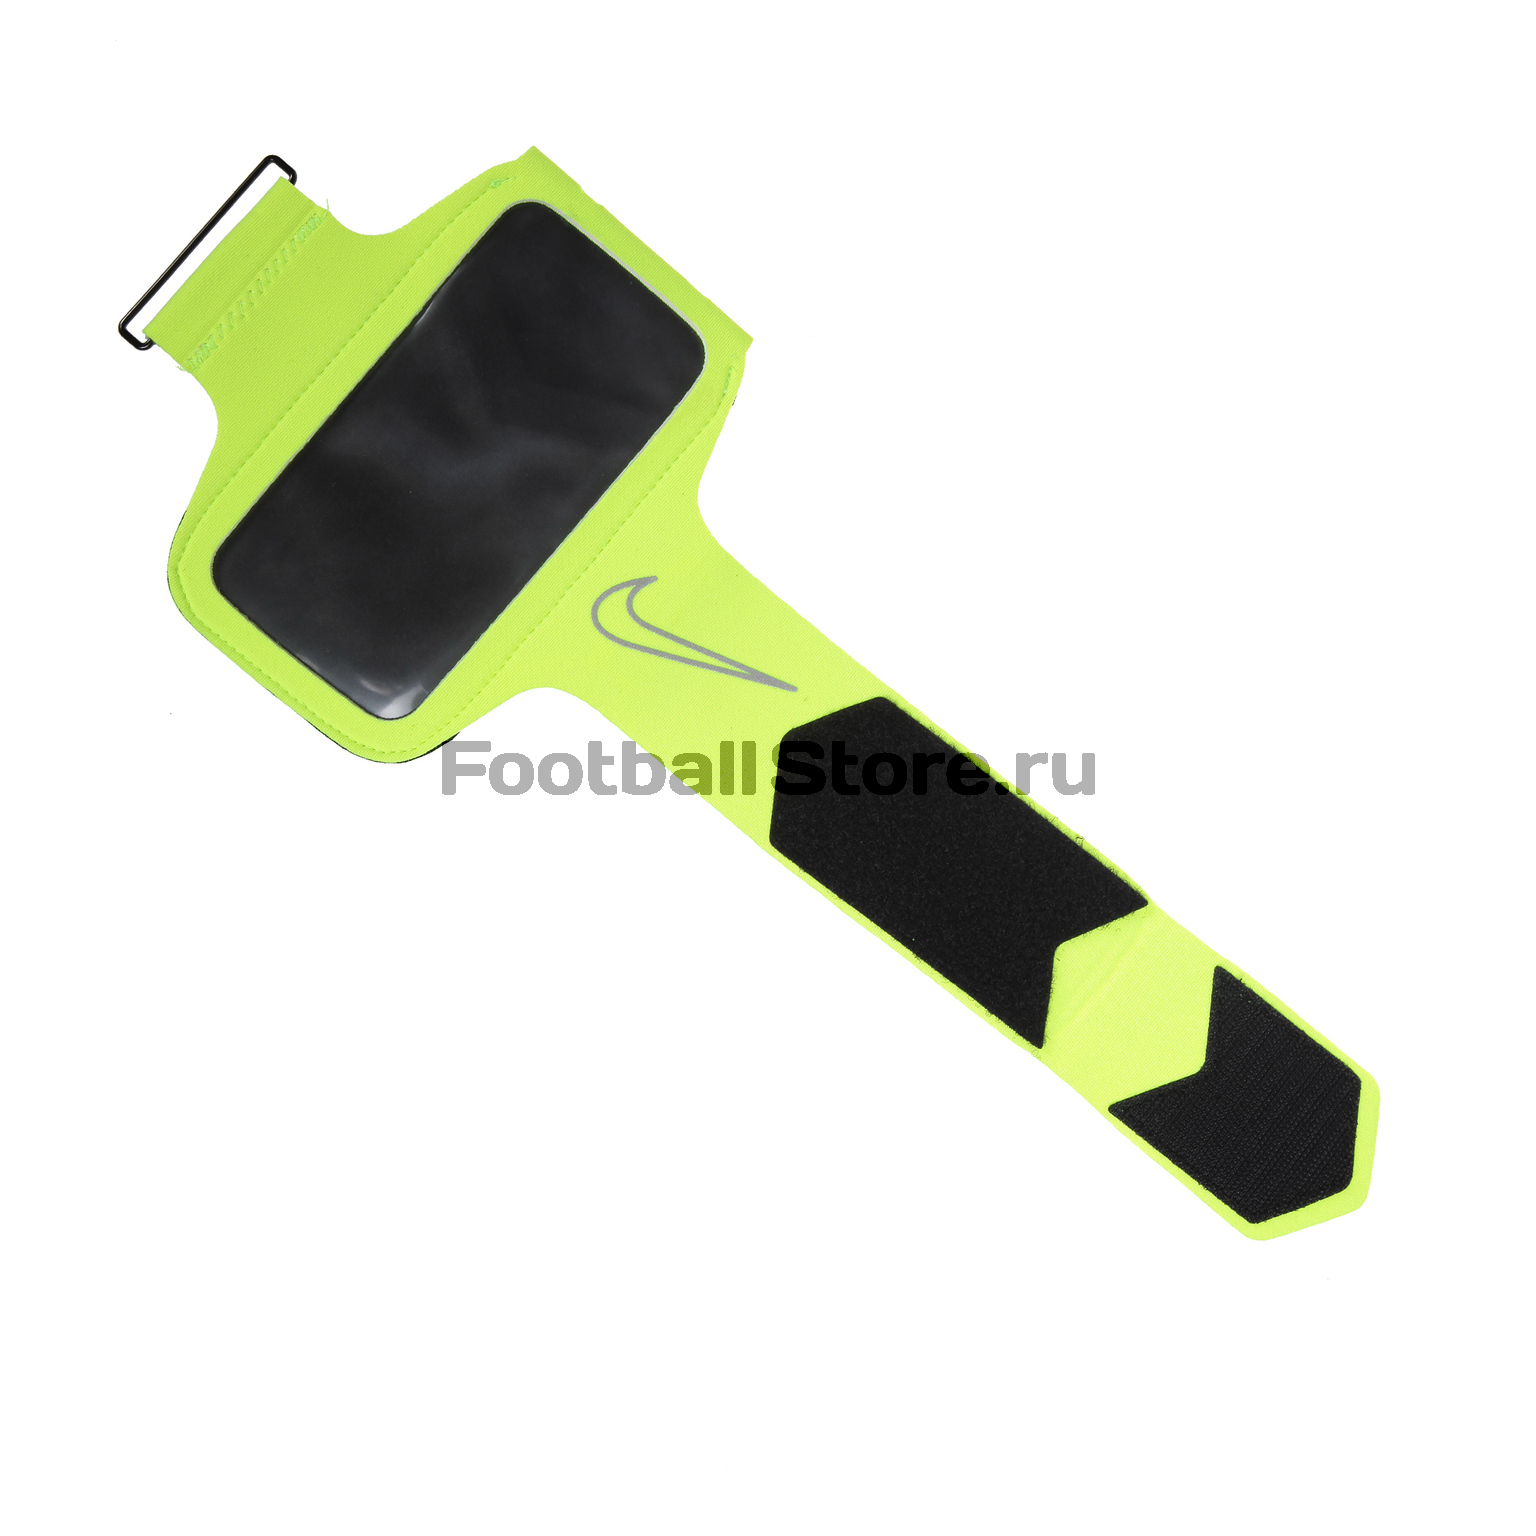 Чехол для Iphone 5/5S на руку Nike Lightweight Arm Band 2.0 N.RN.43.715.OS спортинвентарь nike чехол для плеера на руку nike womens e1 prime perfomance arm band n rn 10 011 os